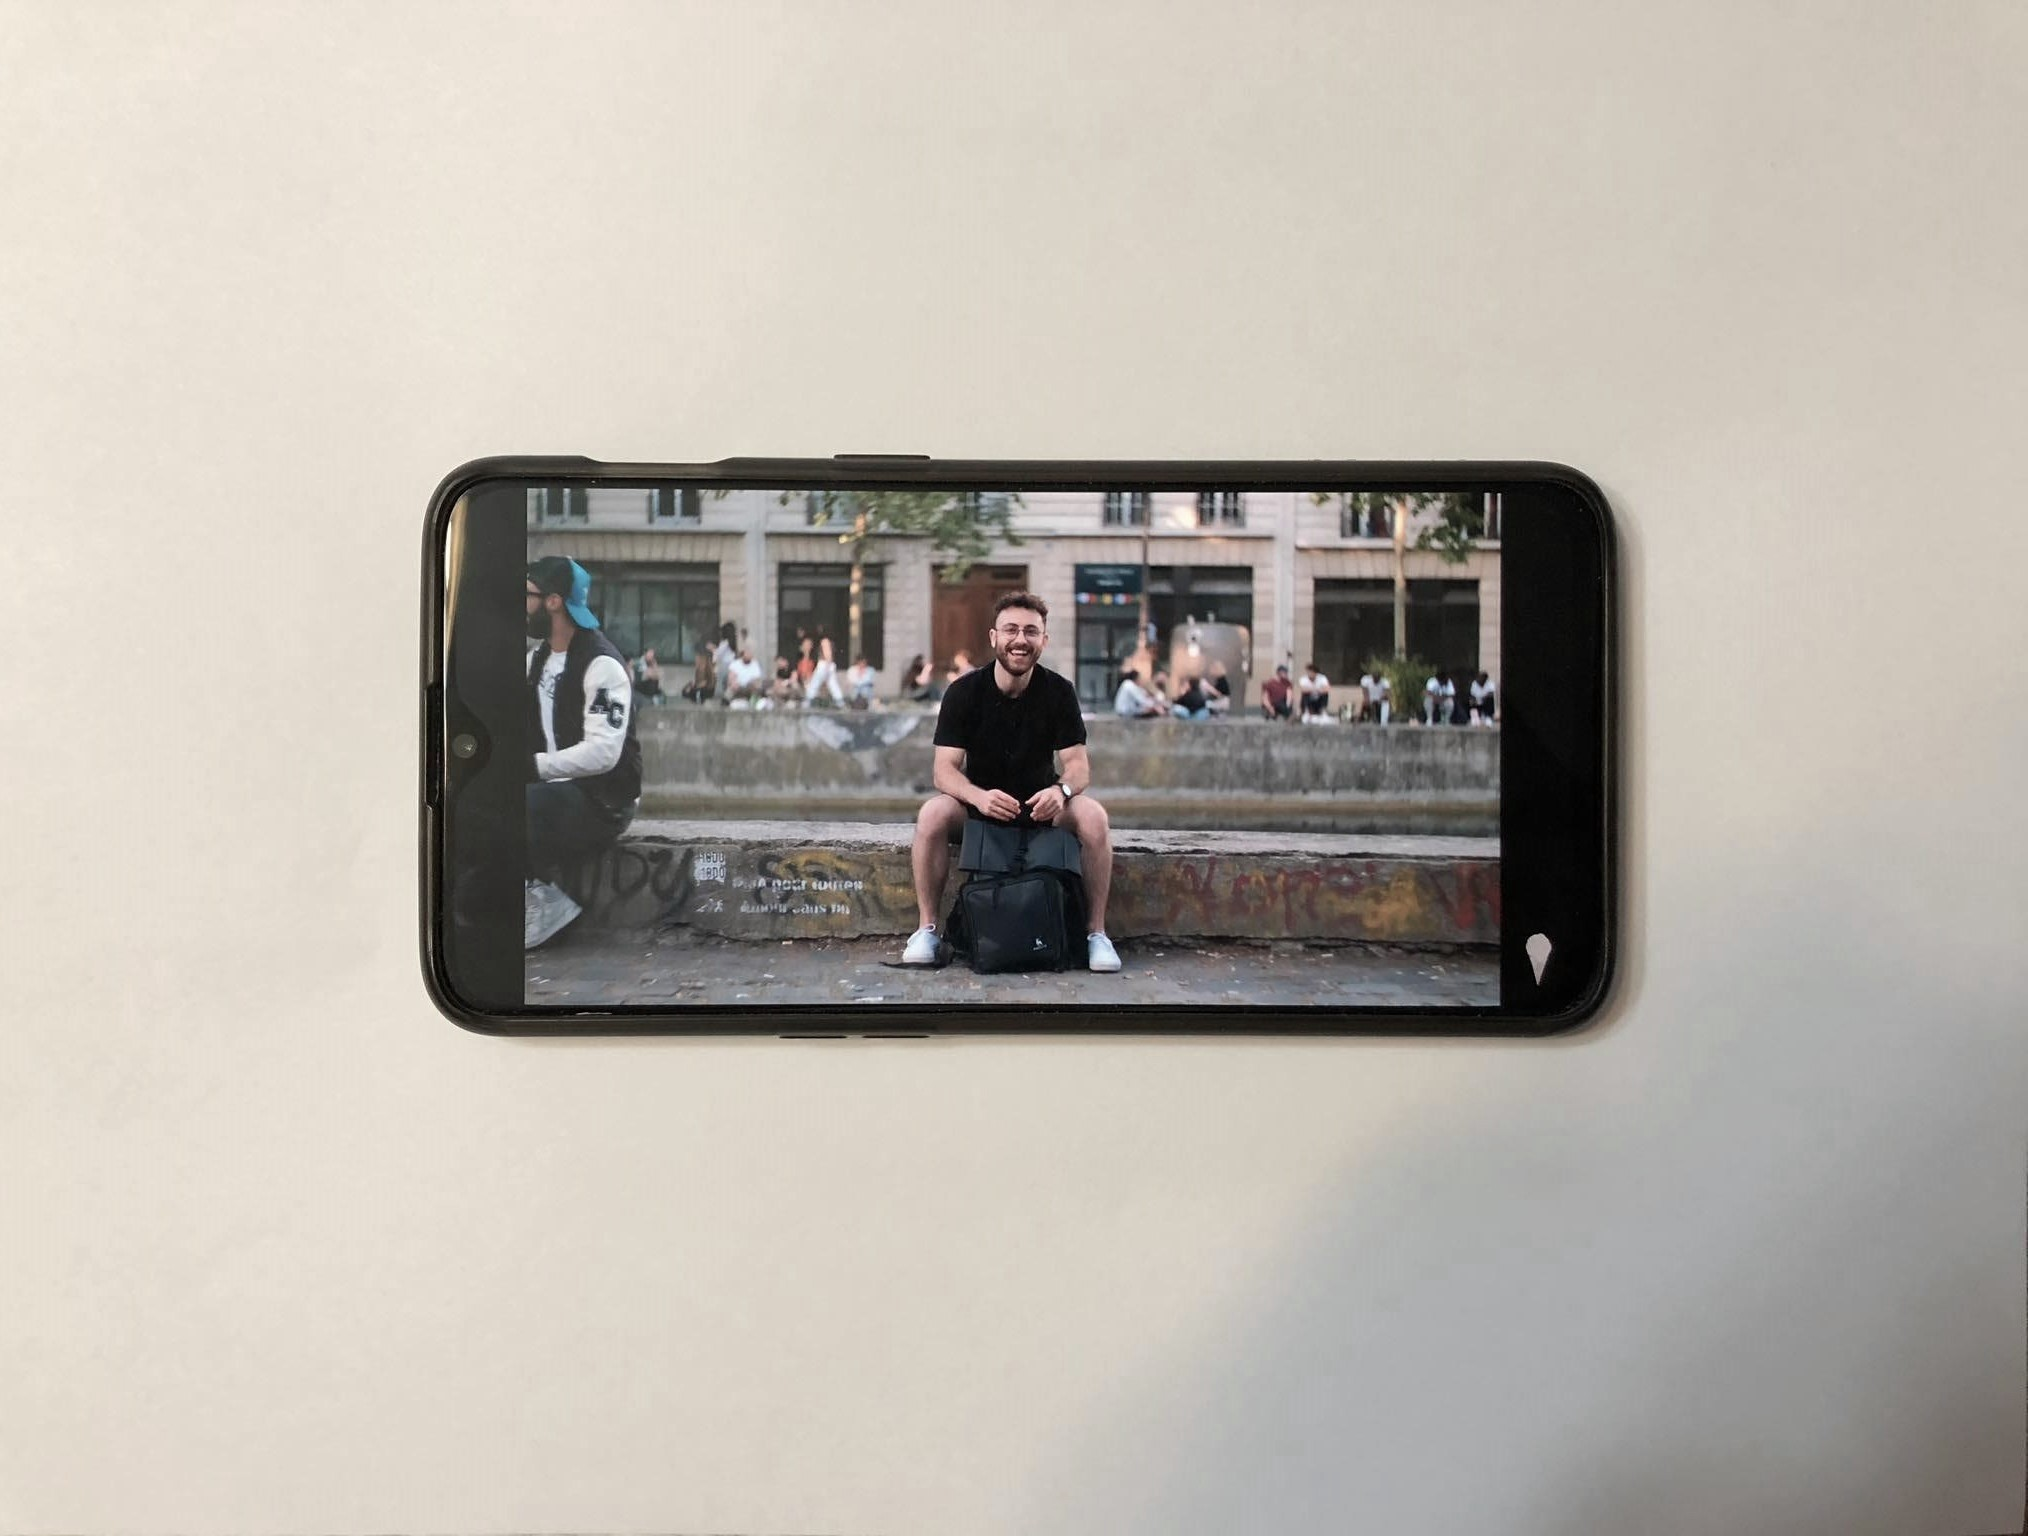 A OnePlus 6T laying flat on a white background playing a YouTube video by Nathaniel Drew